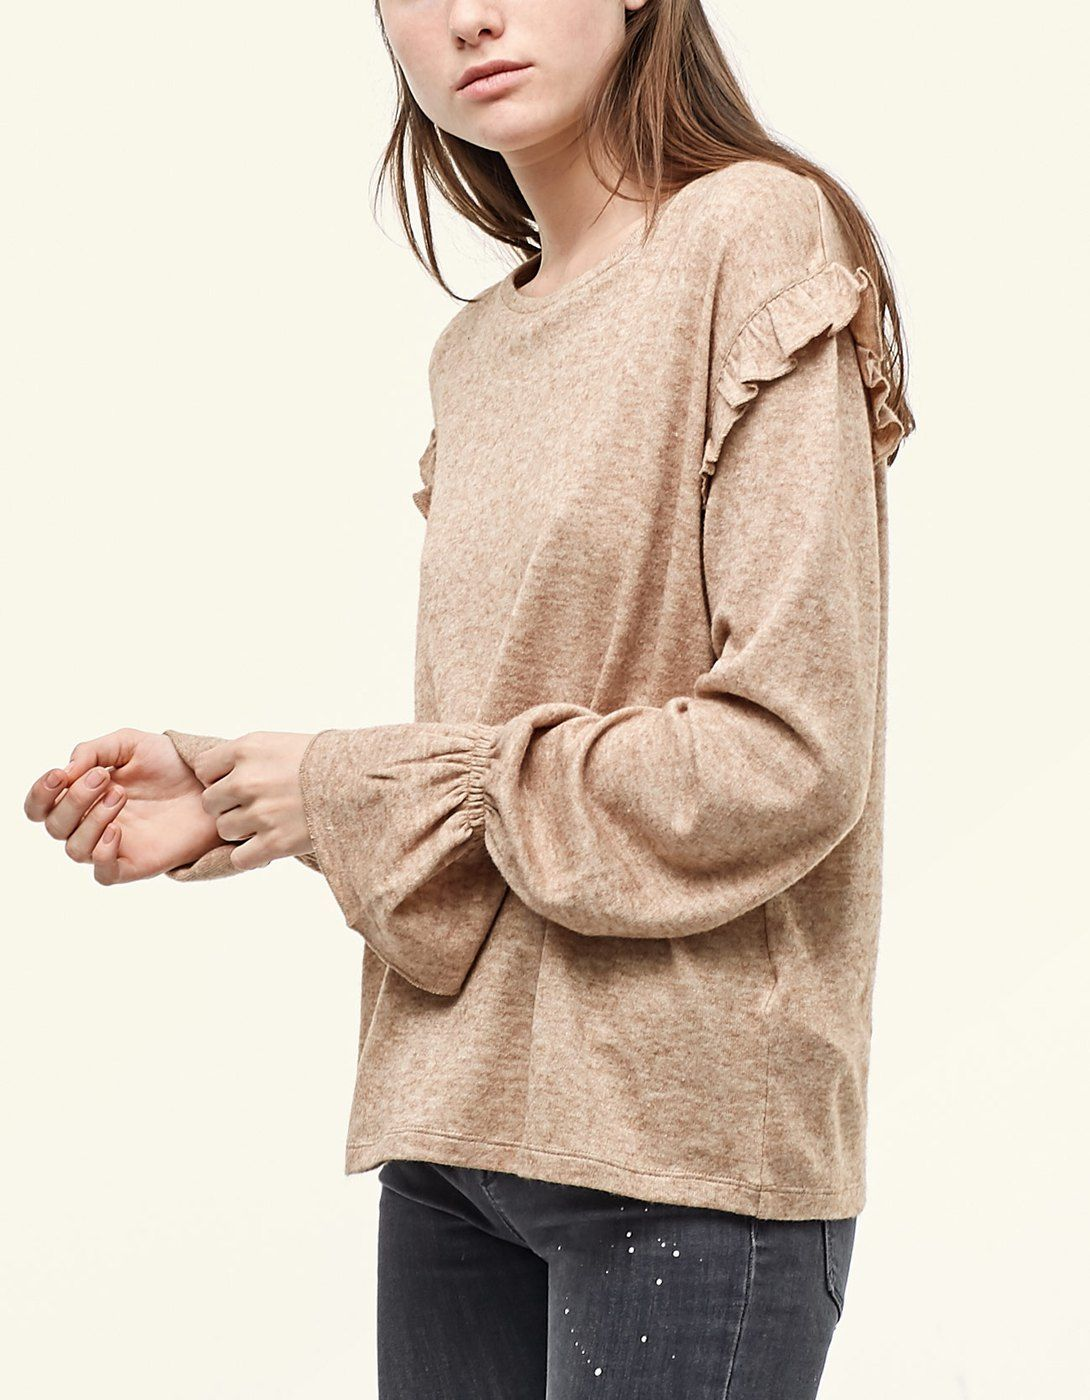 Bell sleeve top with shoulder frill detail T shirts